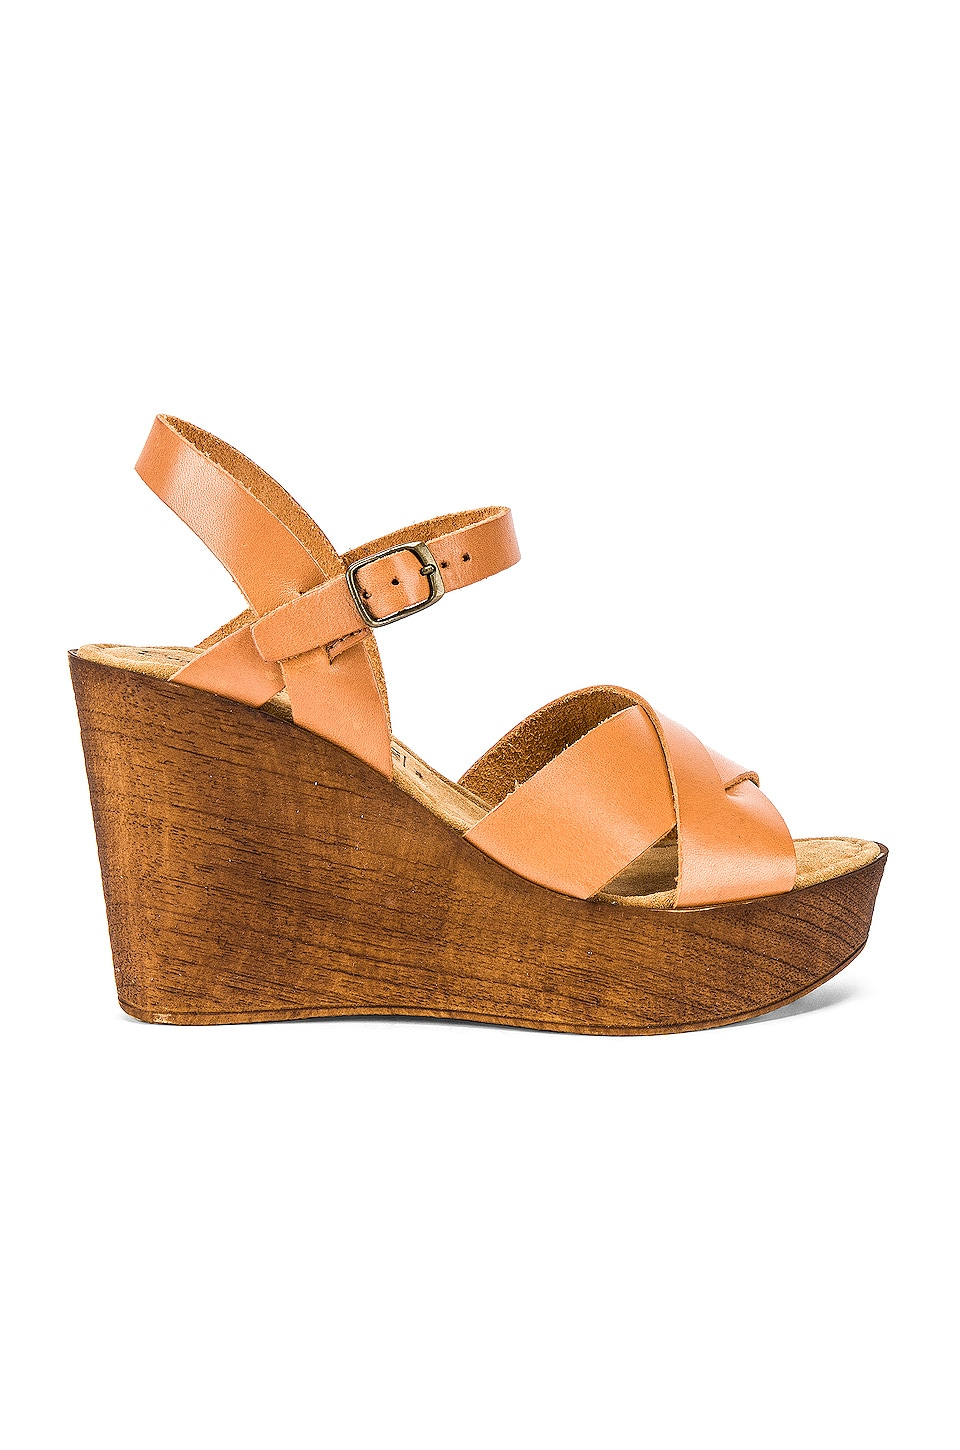 Seychelles Provision Wedge in Cognac Leather